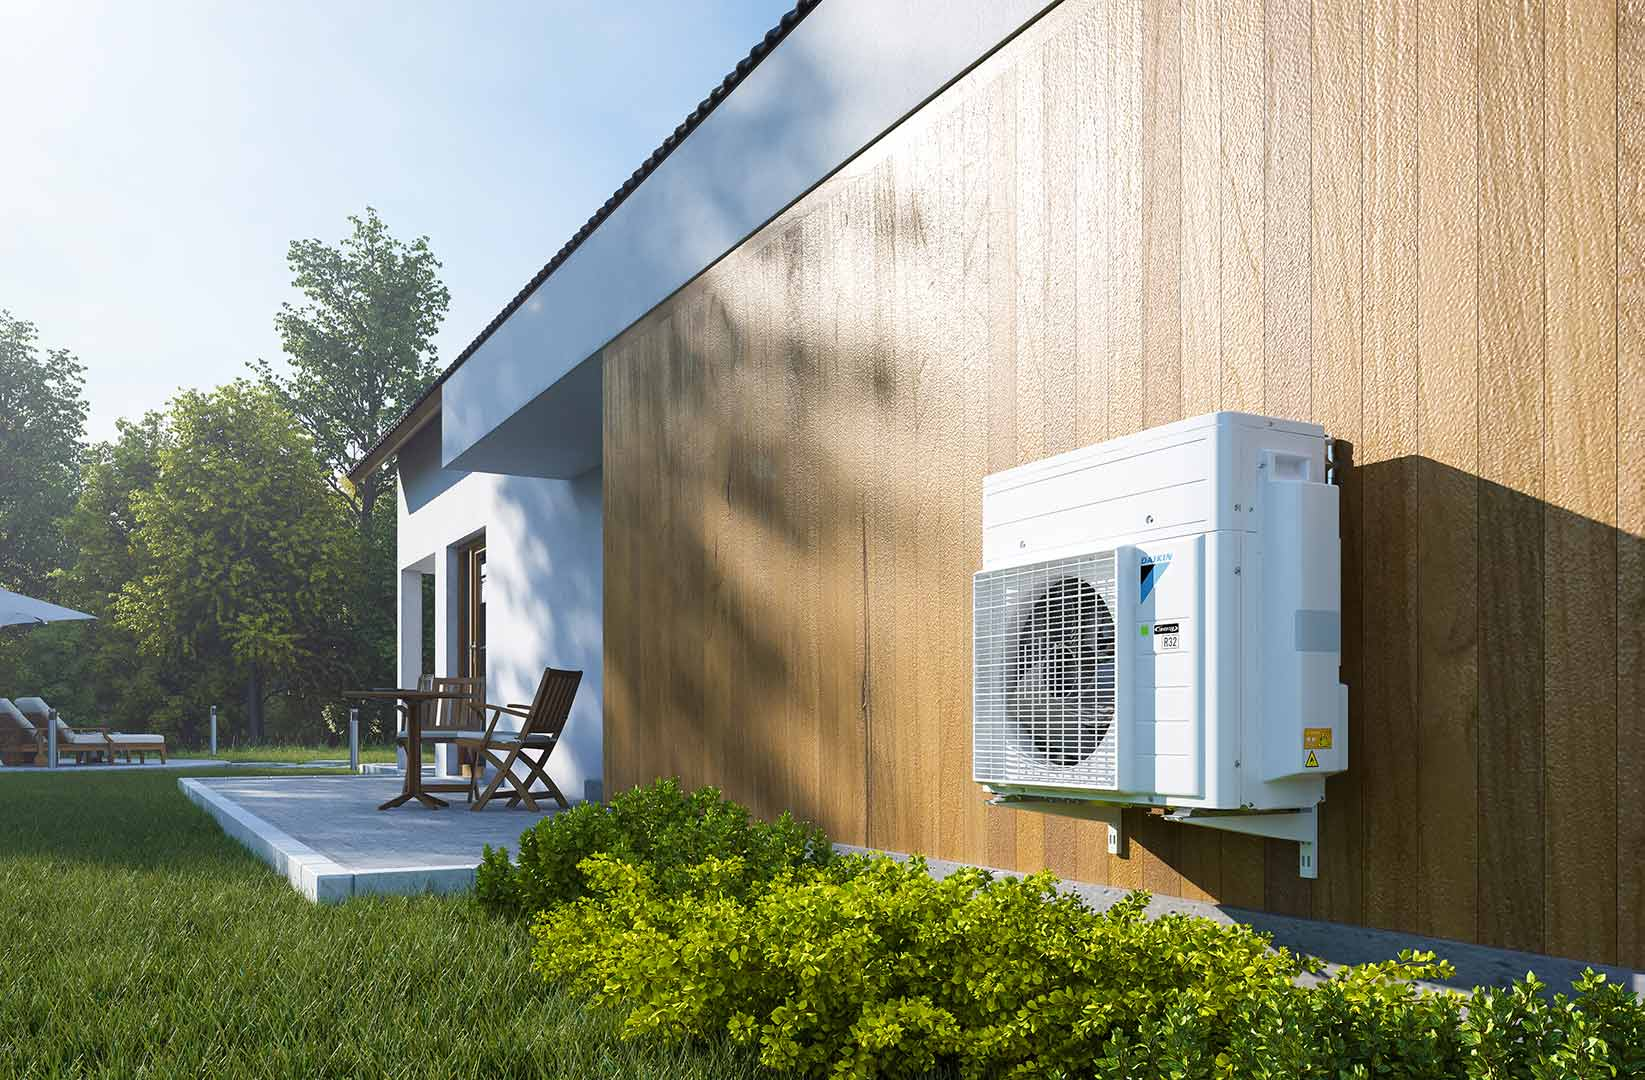 Daikin Altherma H Hybrid outdoor unit installed outside a house in a green environment.